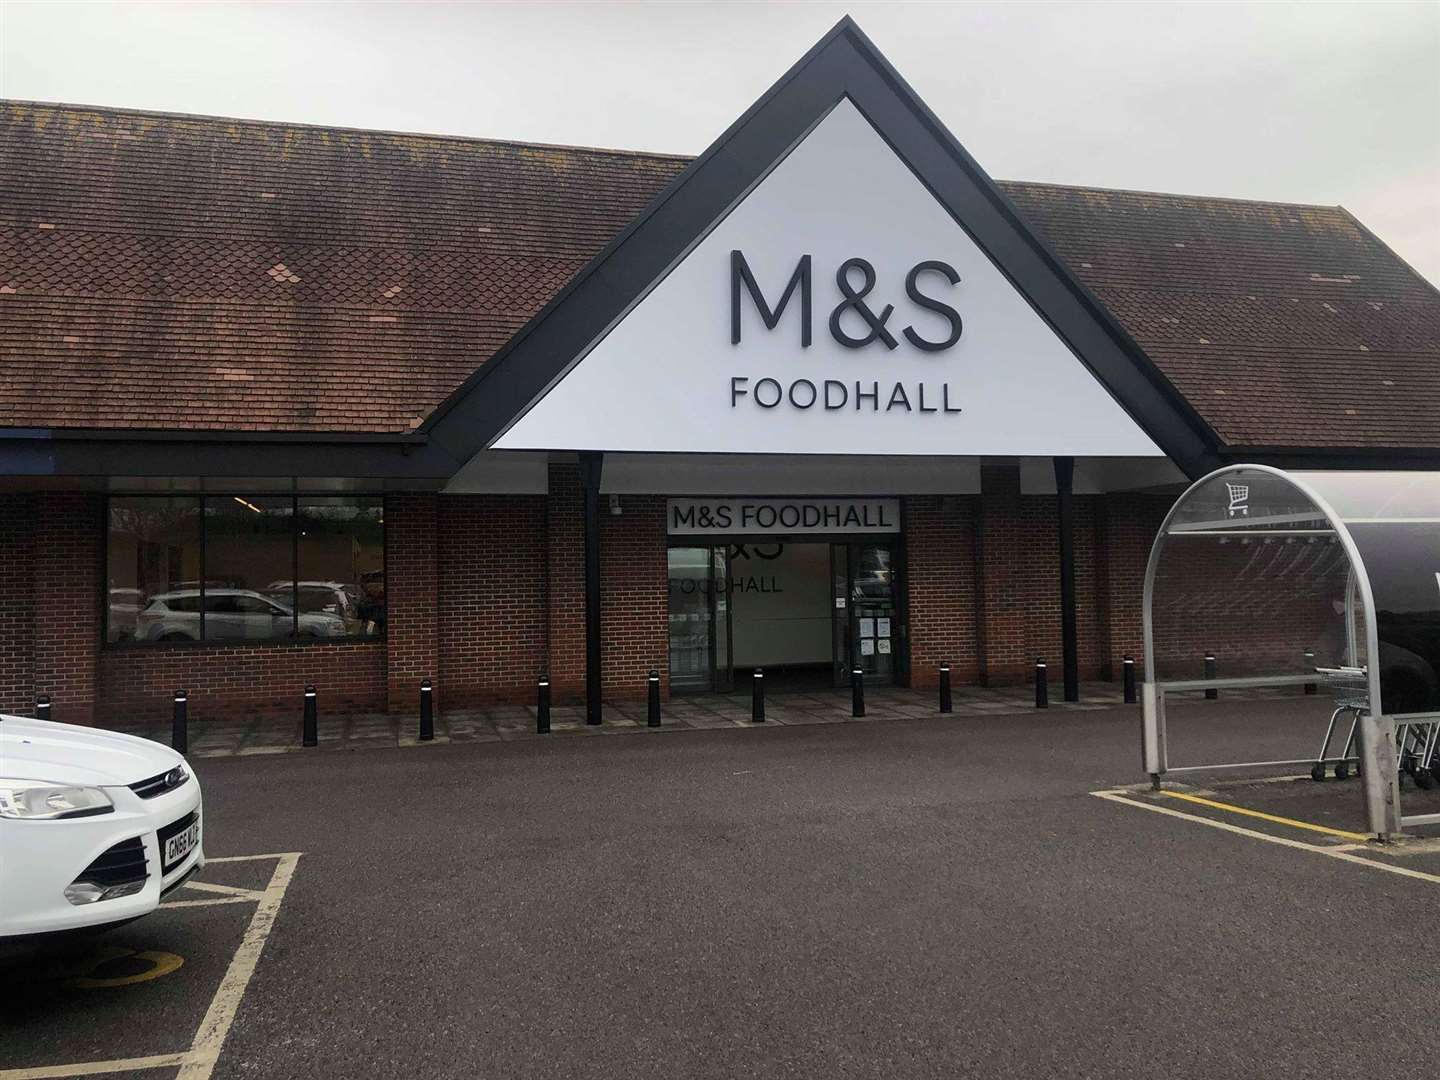 The M&S Foodhall in Ashford (6346793)